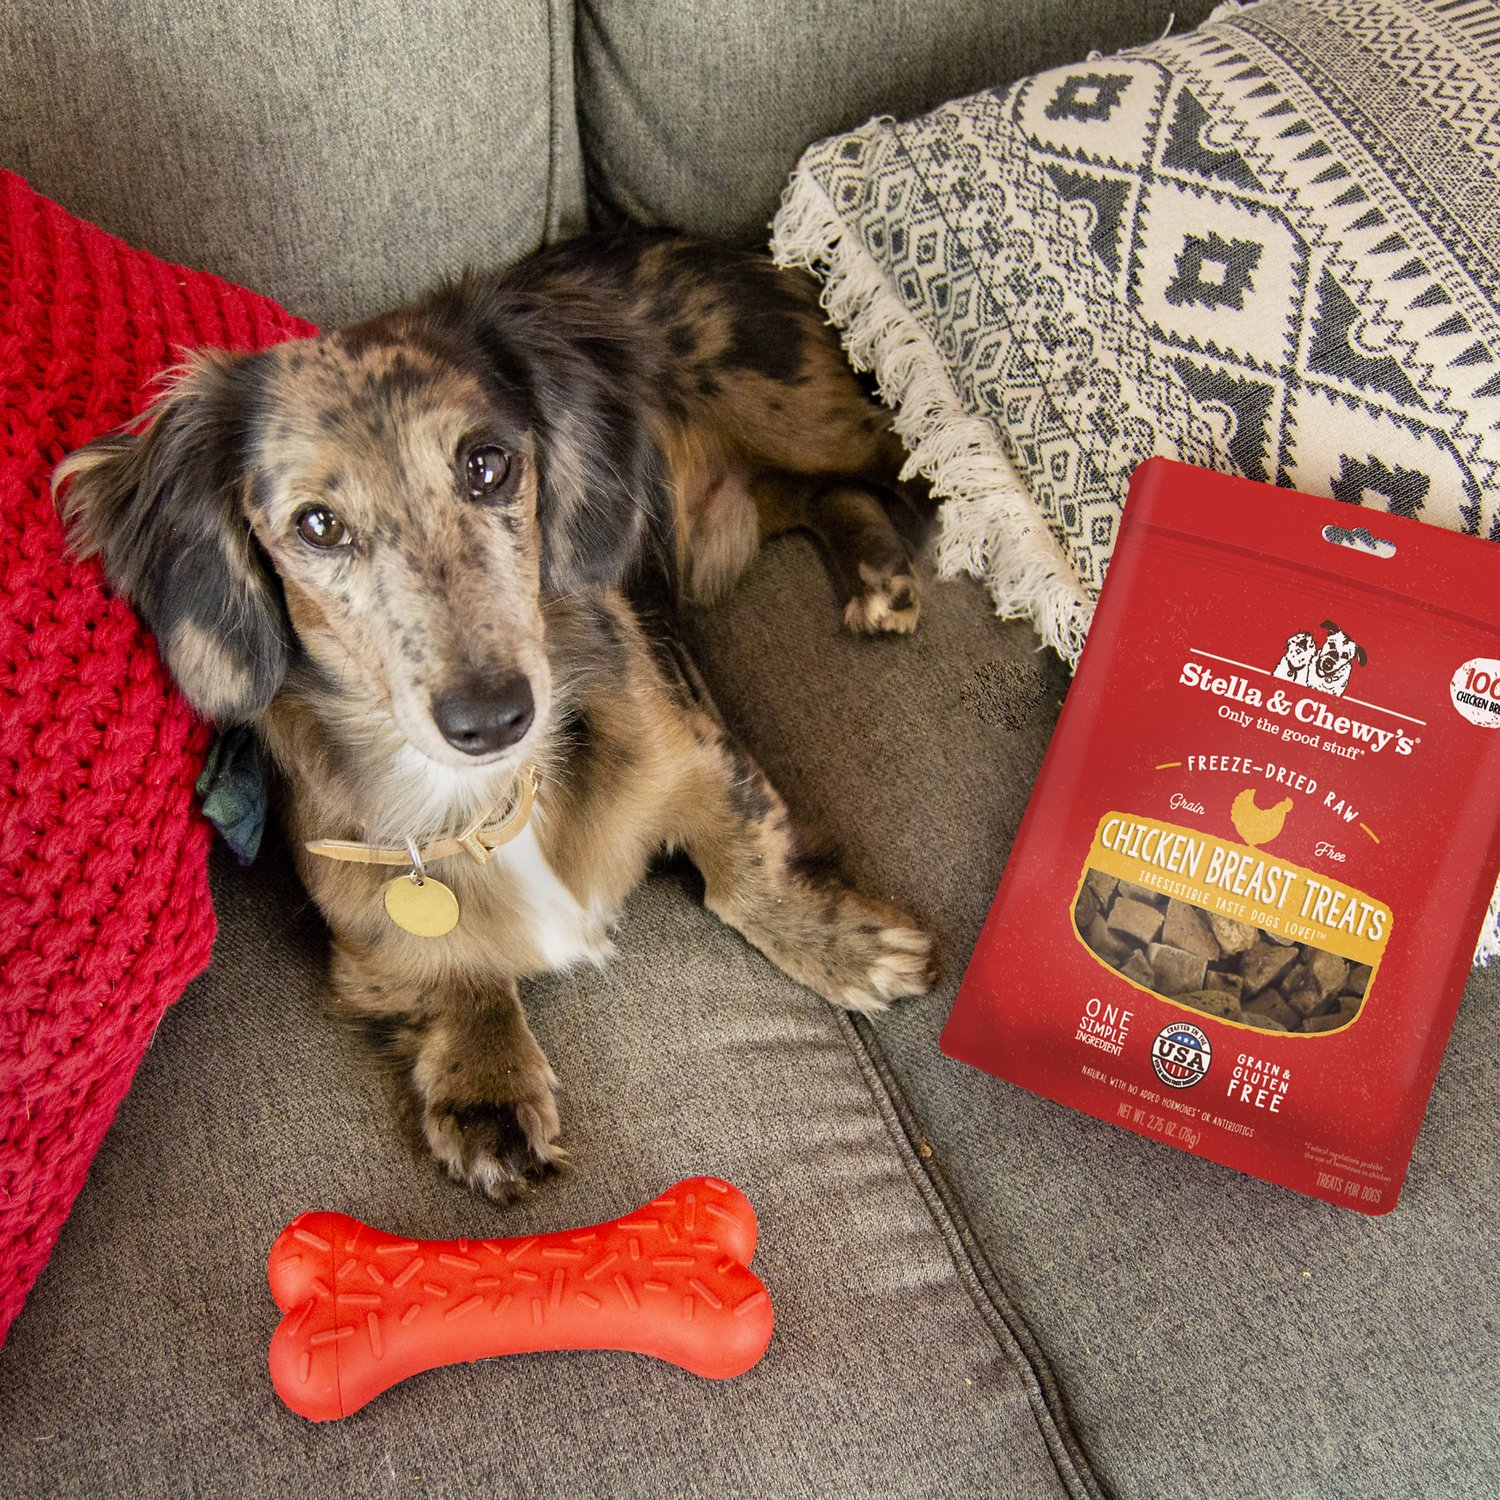 Stella & Chewy's Chicken Breast Freeze-Dried Raw Dog